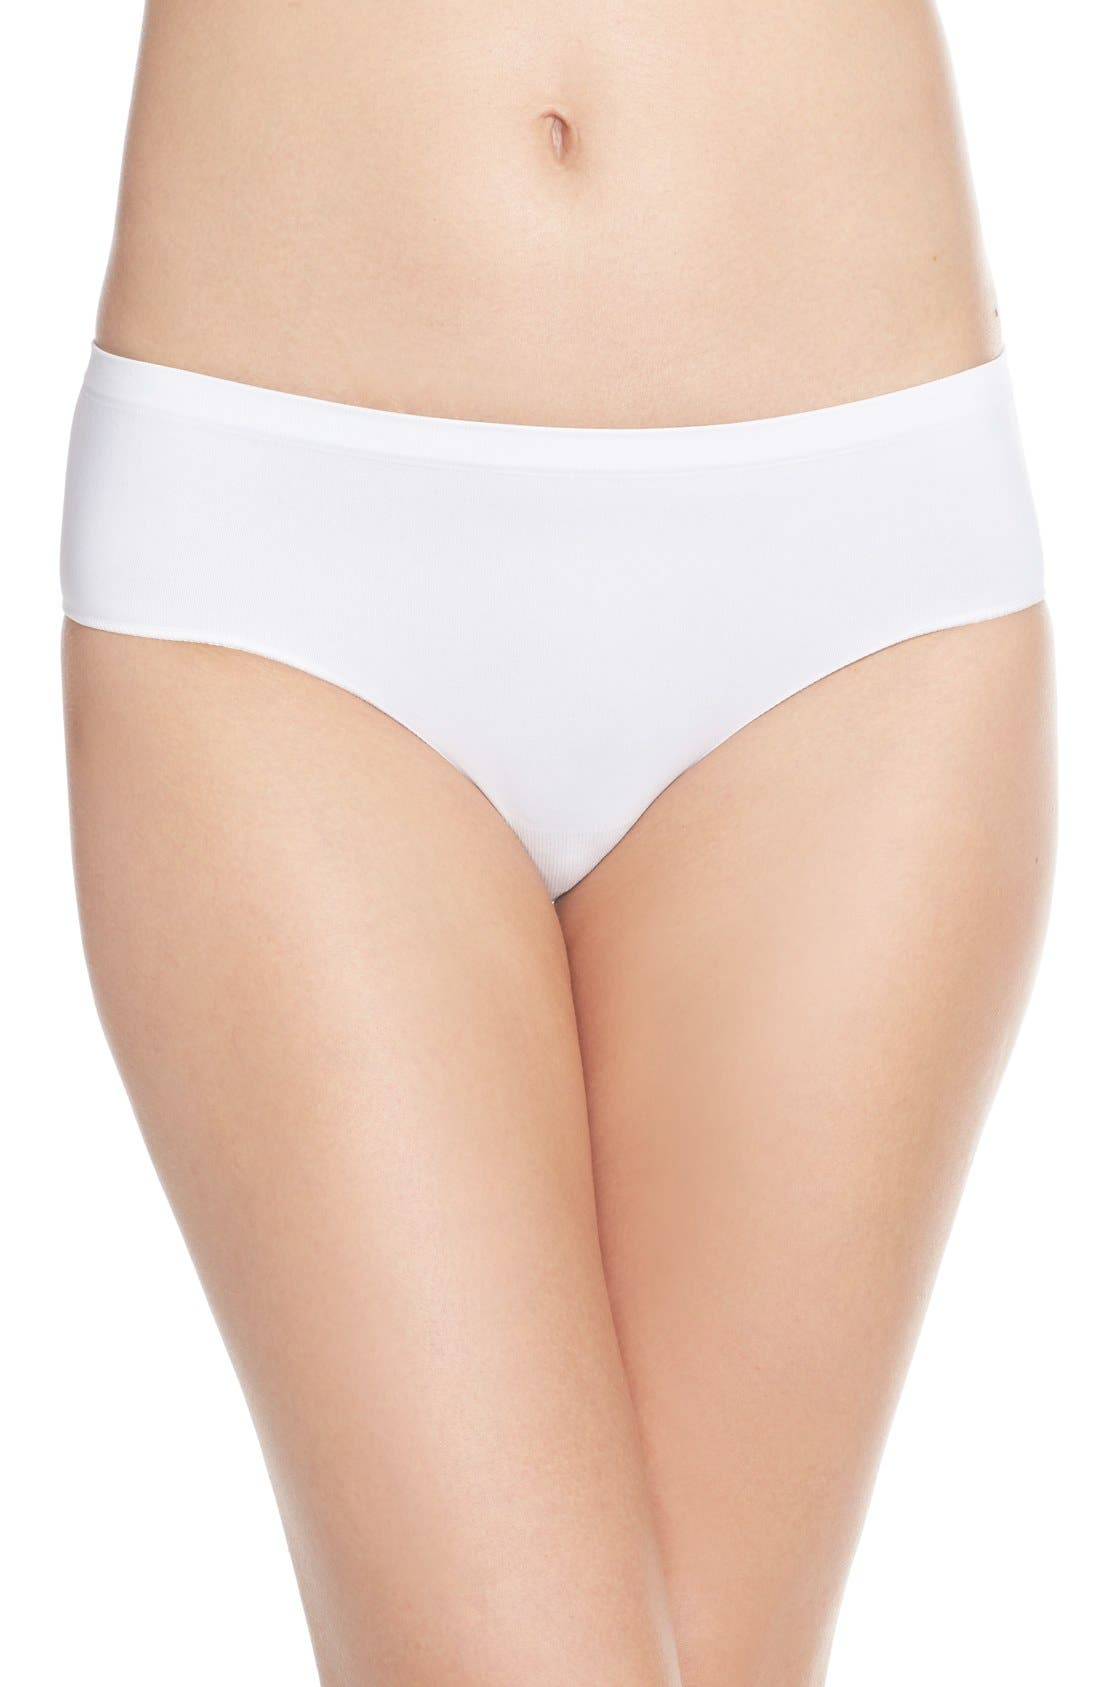 Nordstrom Lingerie Seamless Hipster Panties (4 for $34)